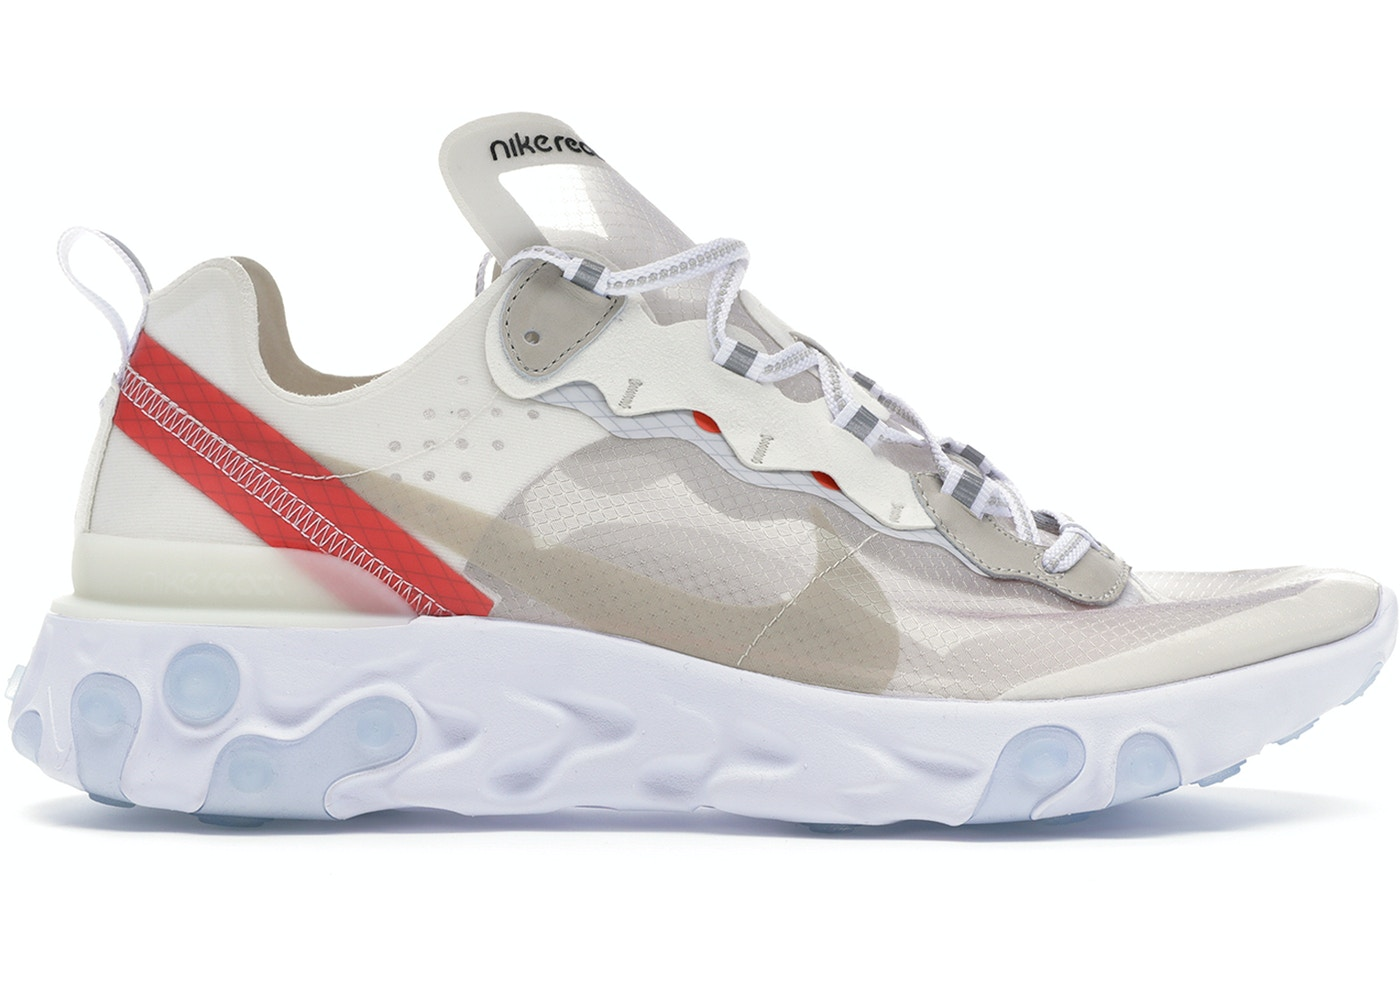 save off 01d01 19918 Nike React Element 87 Sail Light Bone - AQ1090-100